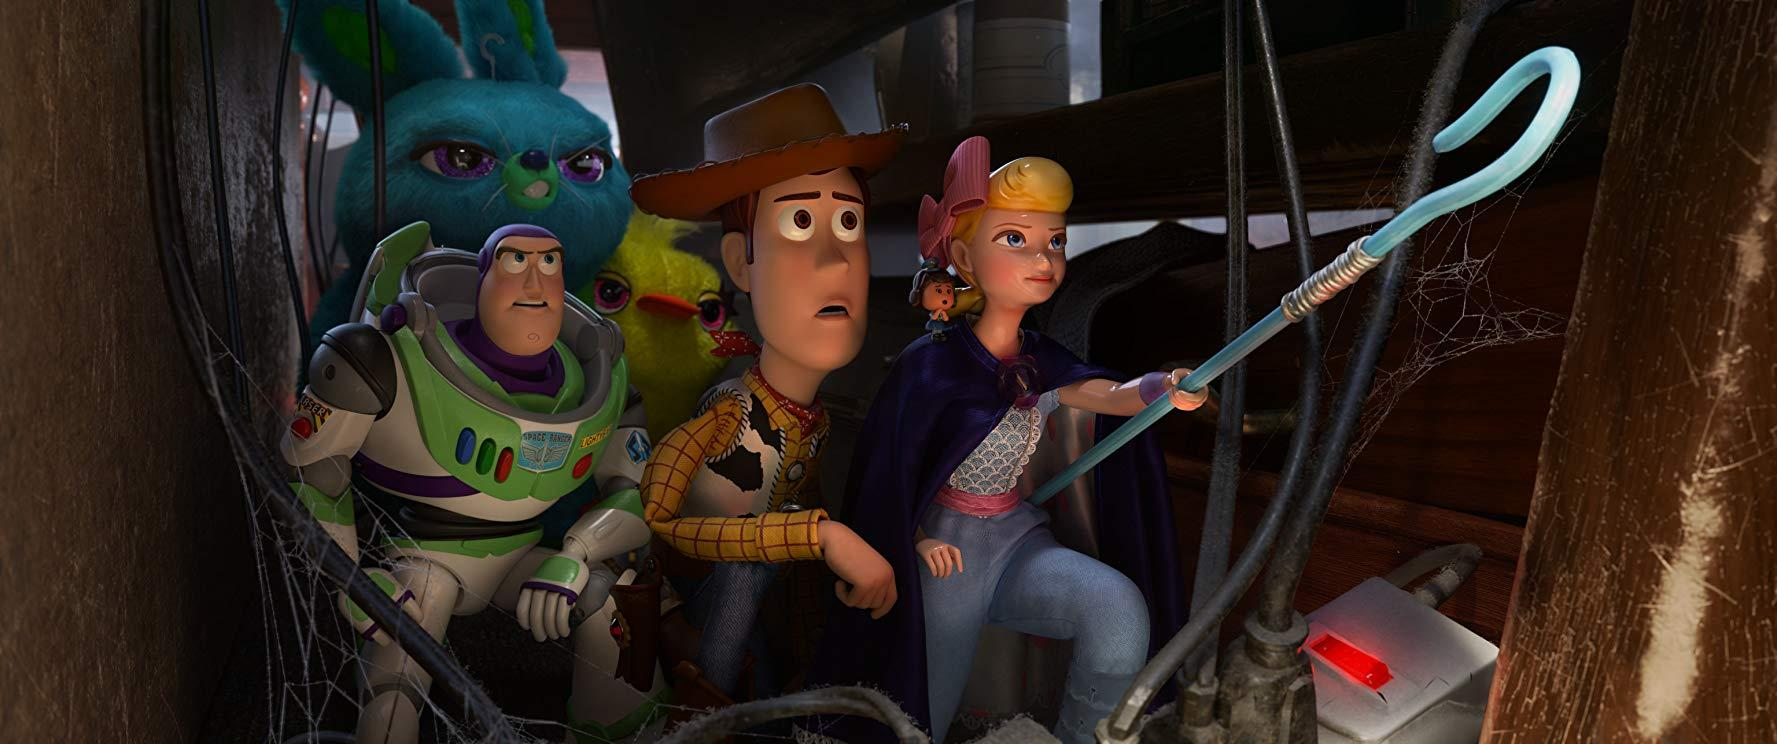 Is 'Toy Story 4' Any Good? Here's What The Reviews Say